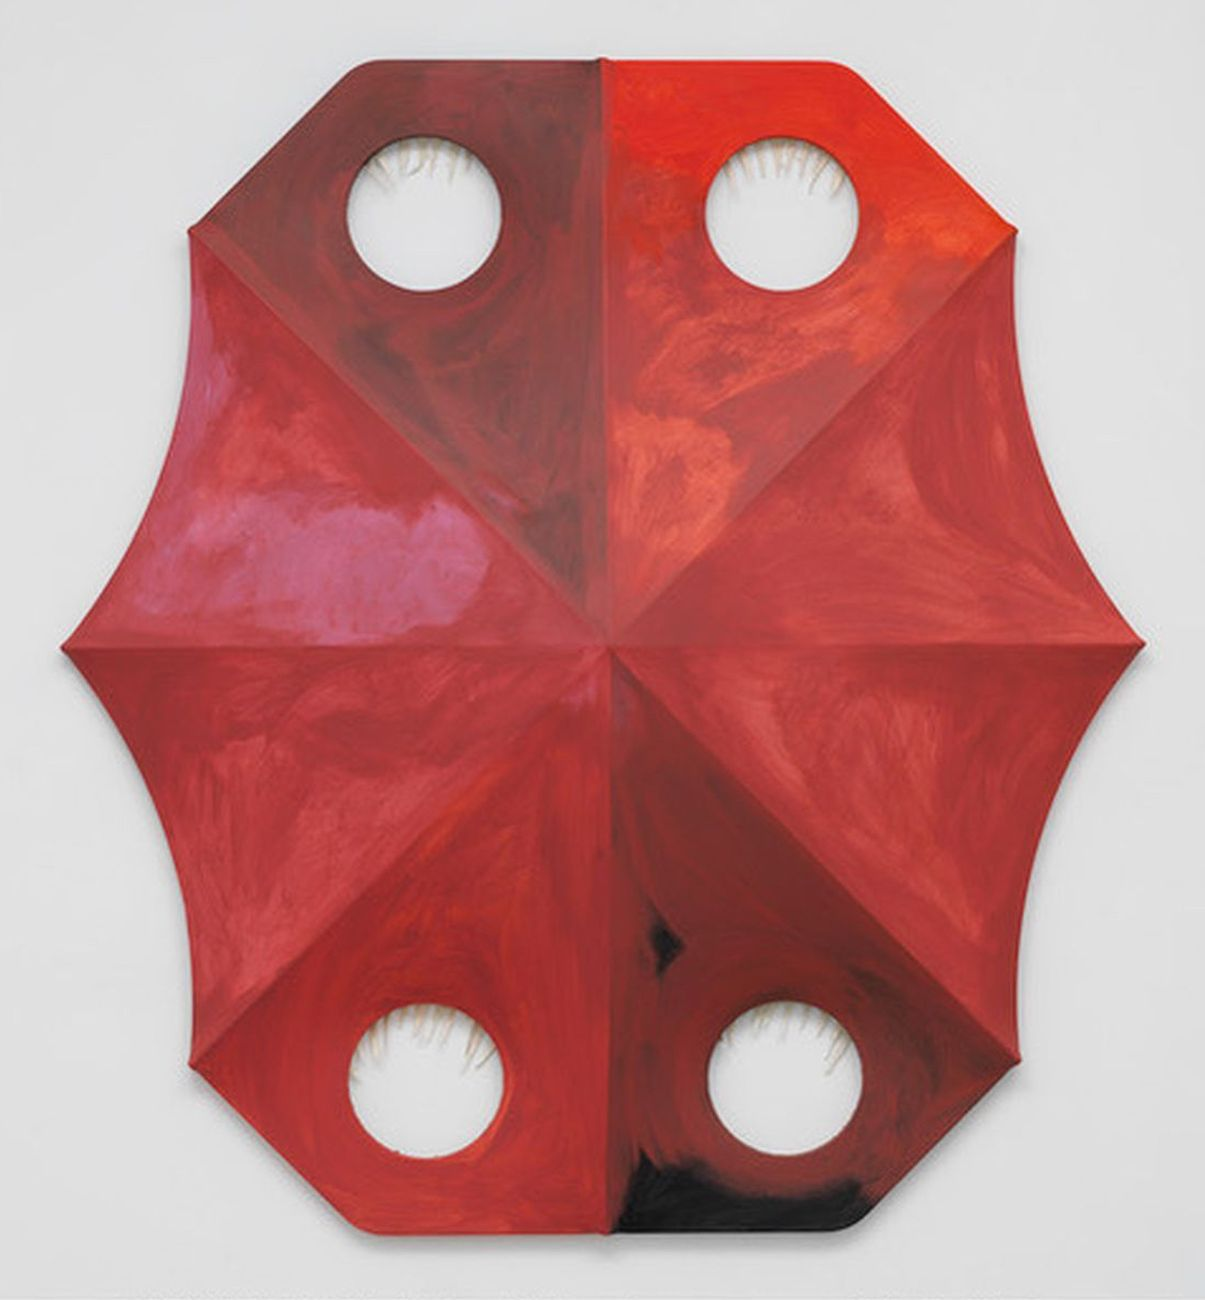 Blair Thurman, Profondo Rosso, 2018. Courtesy l'artista e Gagosian